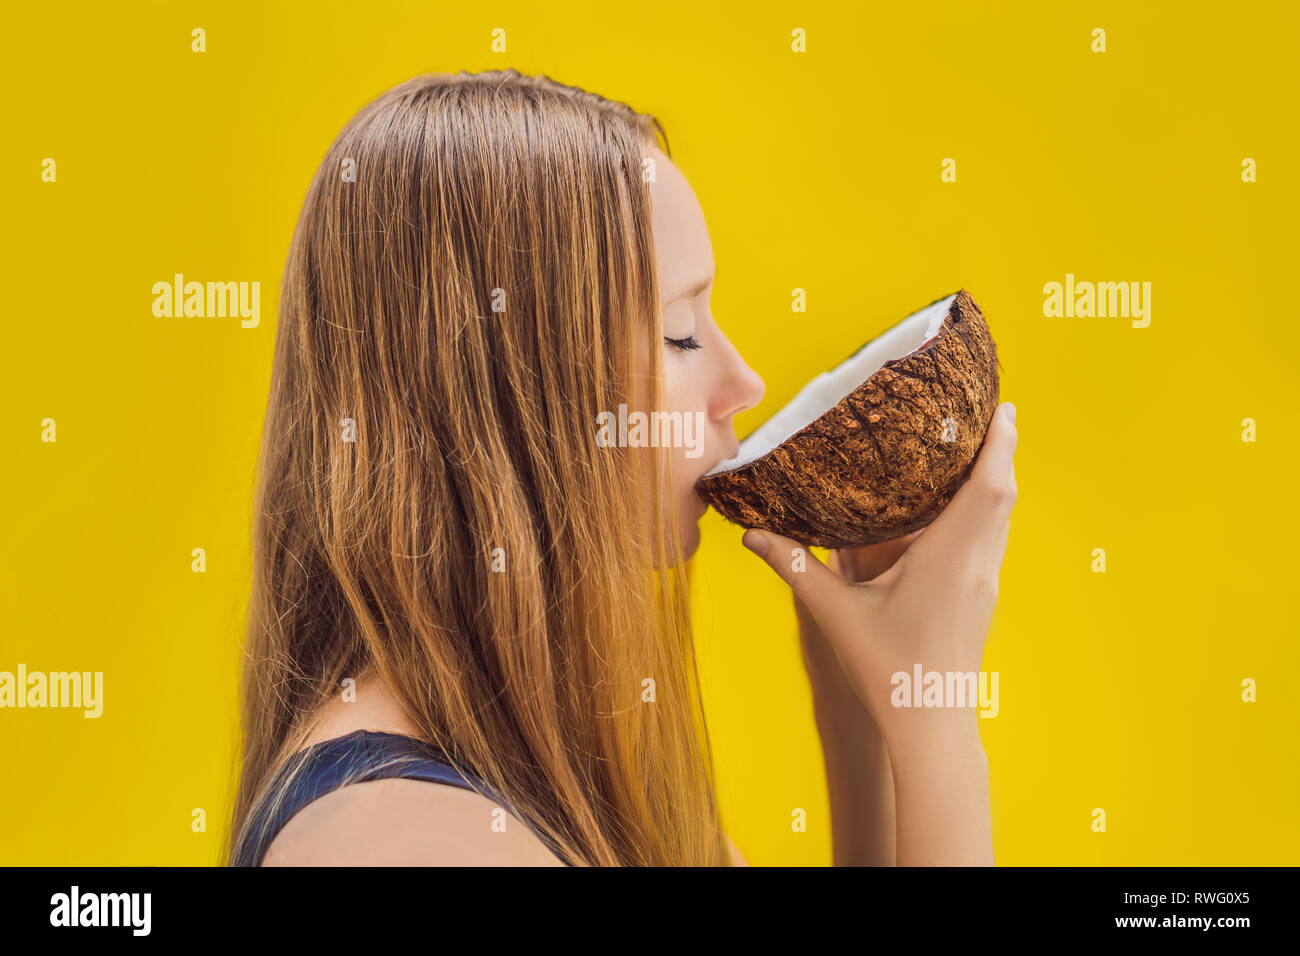 Young woman drinking coconut milk on Chafrom coconut on a yellow background - Stock Image